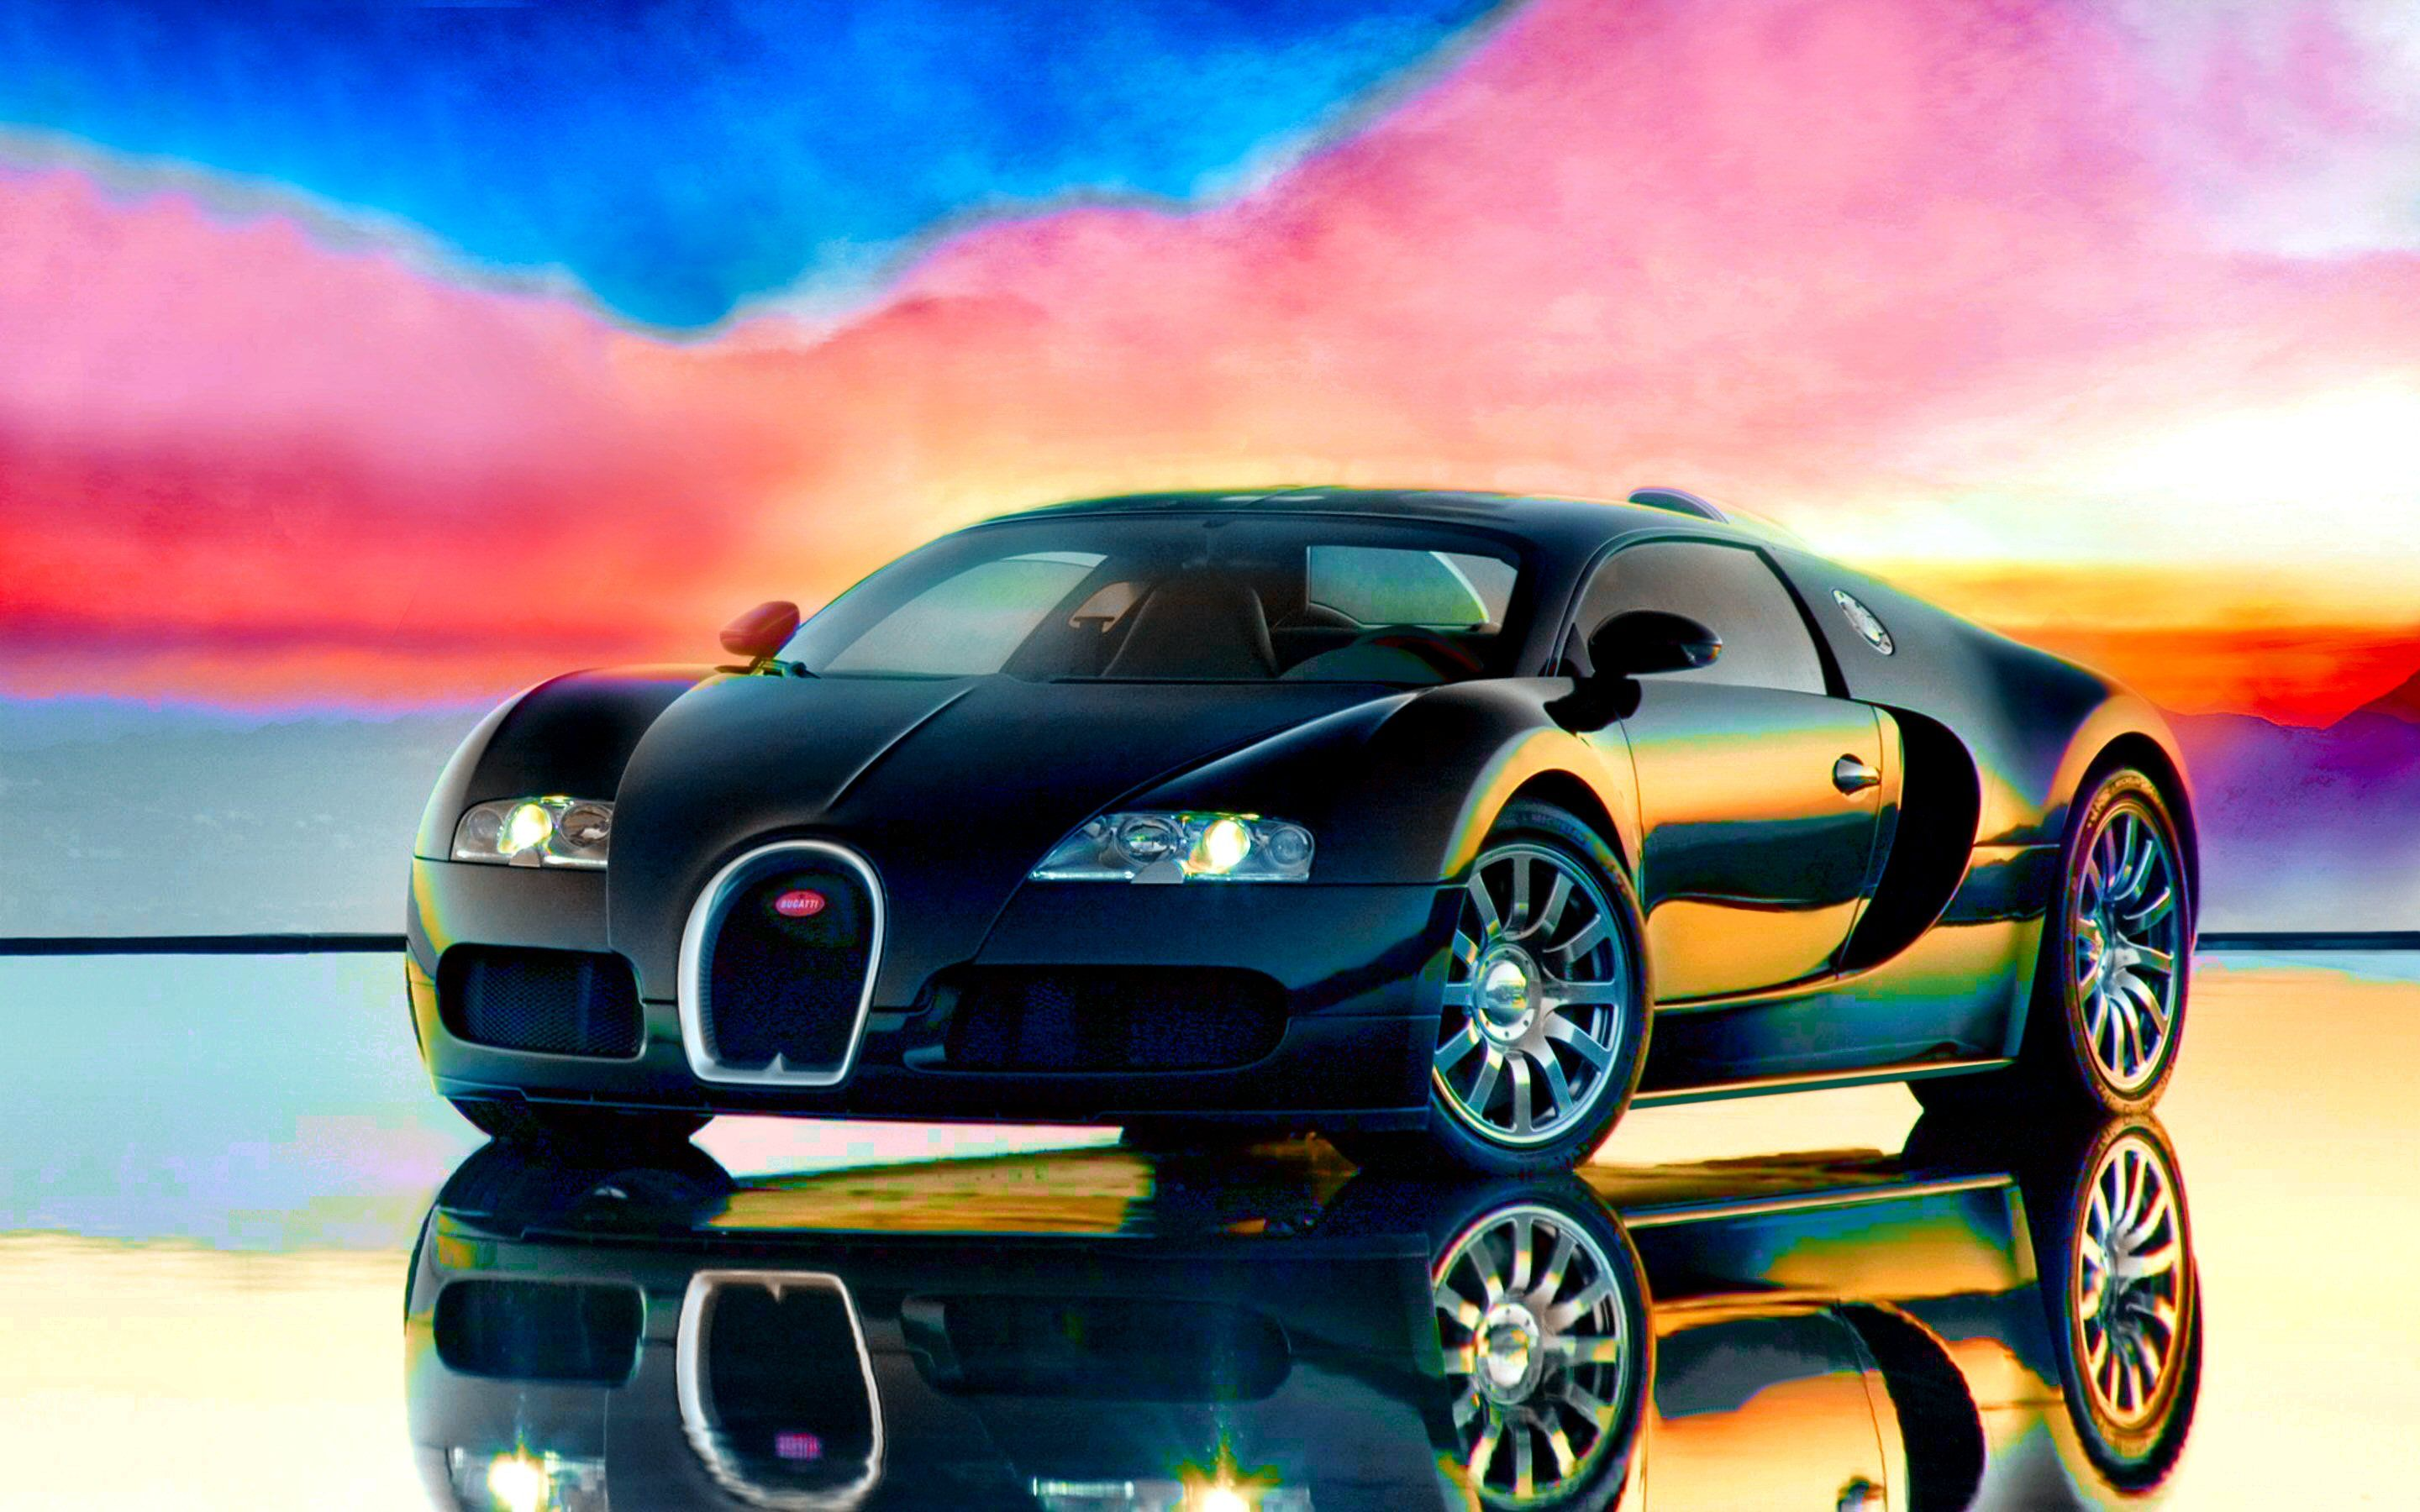 Bugatti veyron hd wallpapers backgrounds wallpaper wallpapers - Bugatti veyron photos wallpapers ...